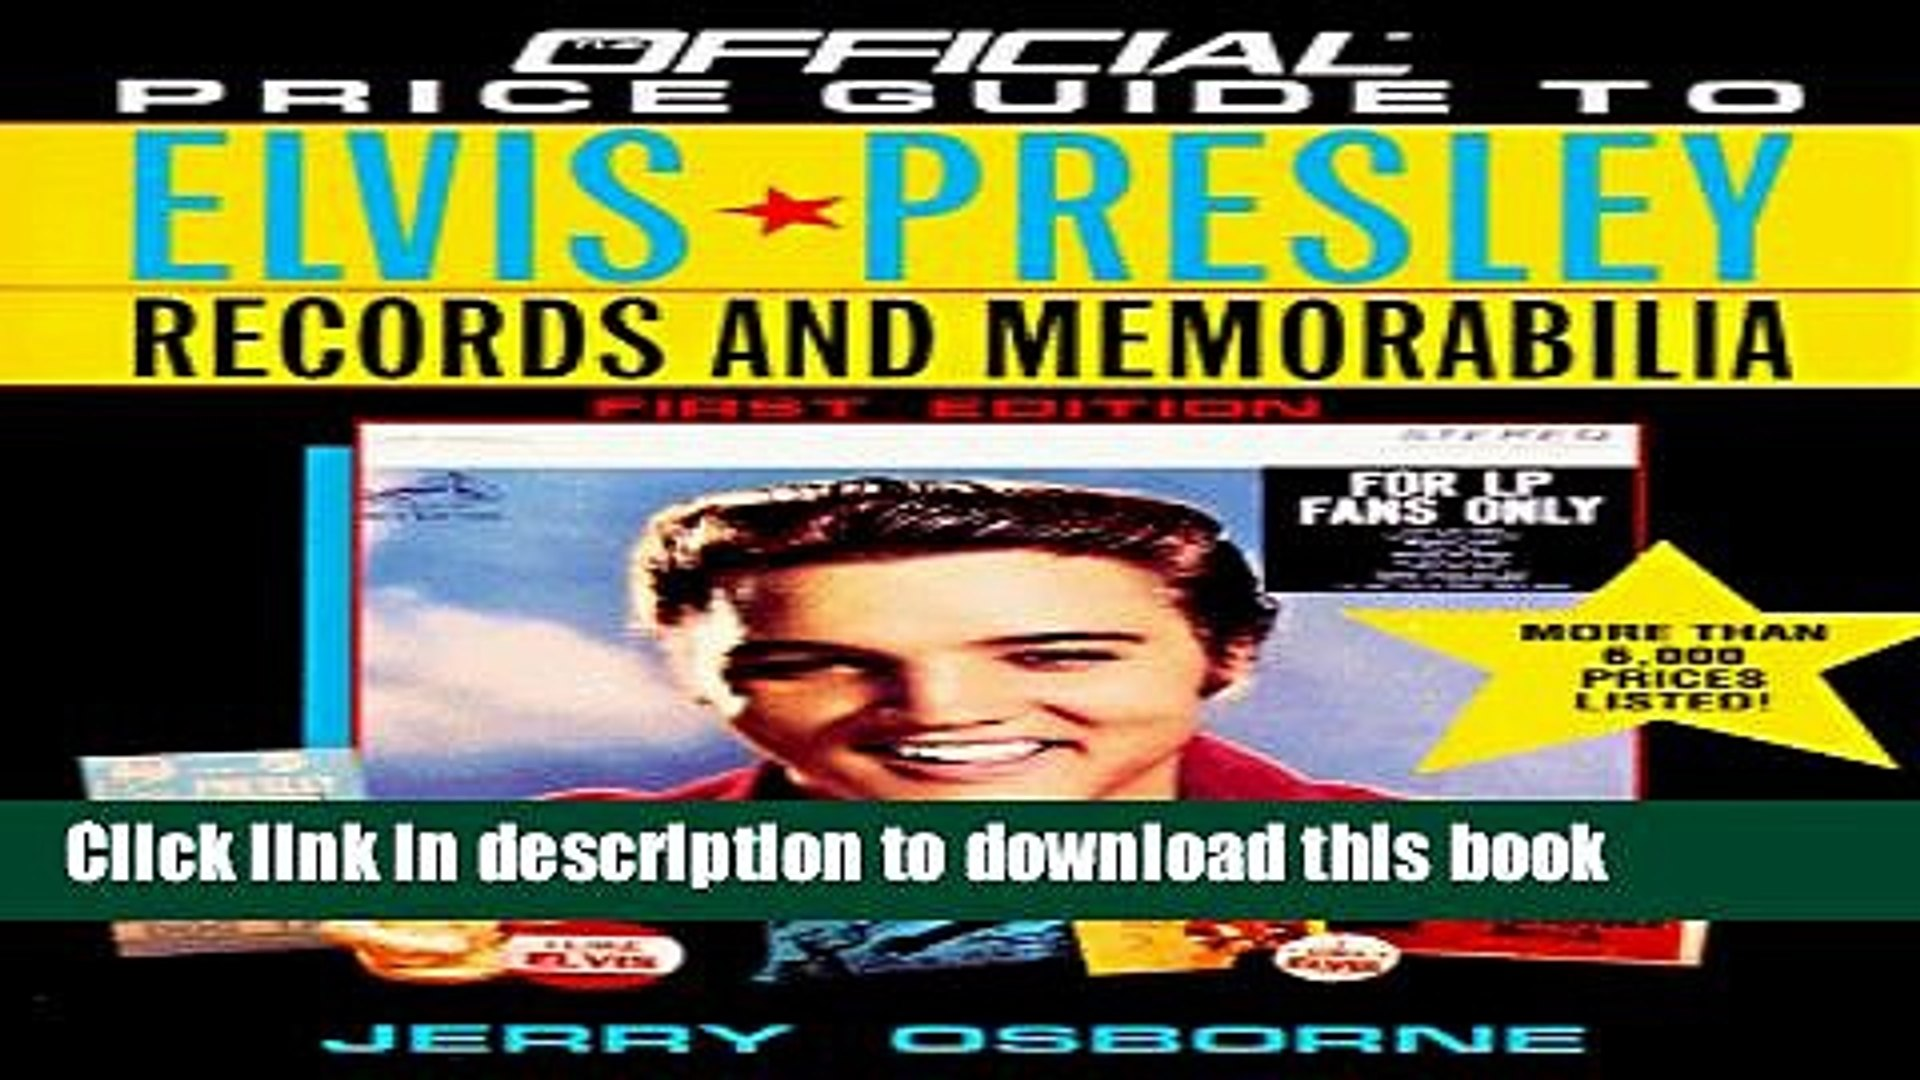 [Read PDF] Official Price Guide to Elvis Presley Records and Memorabilia Ebook Online